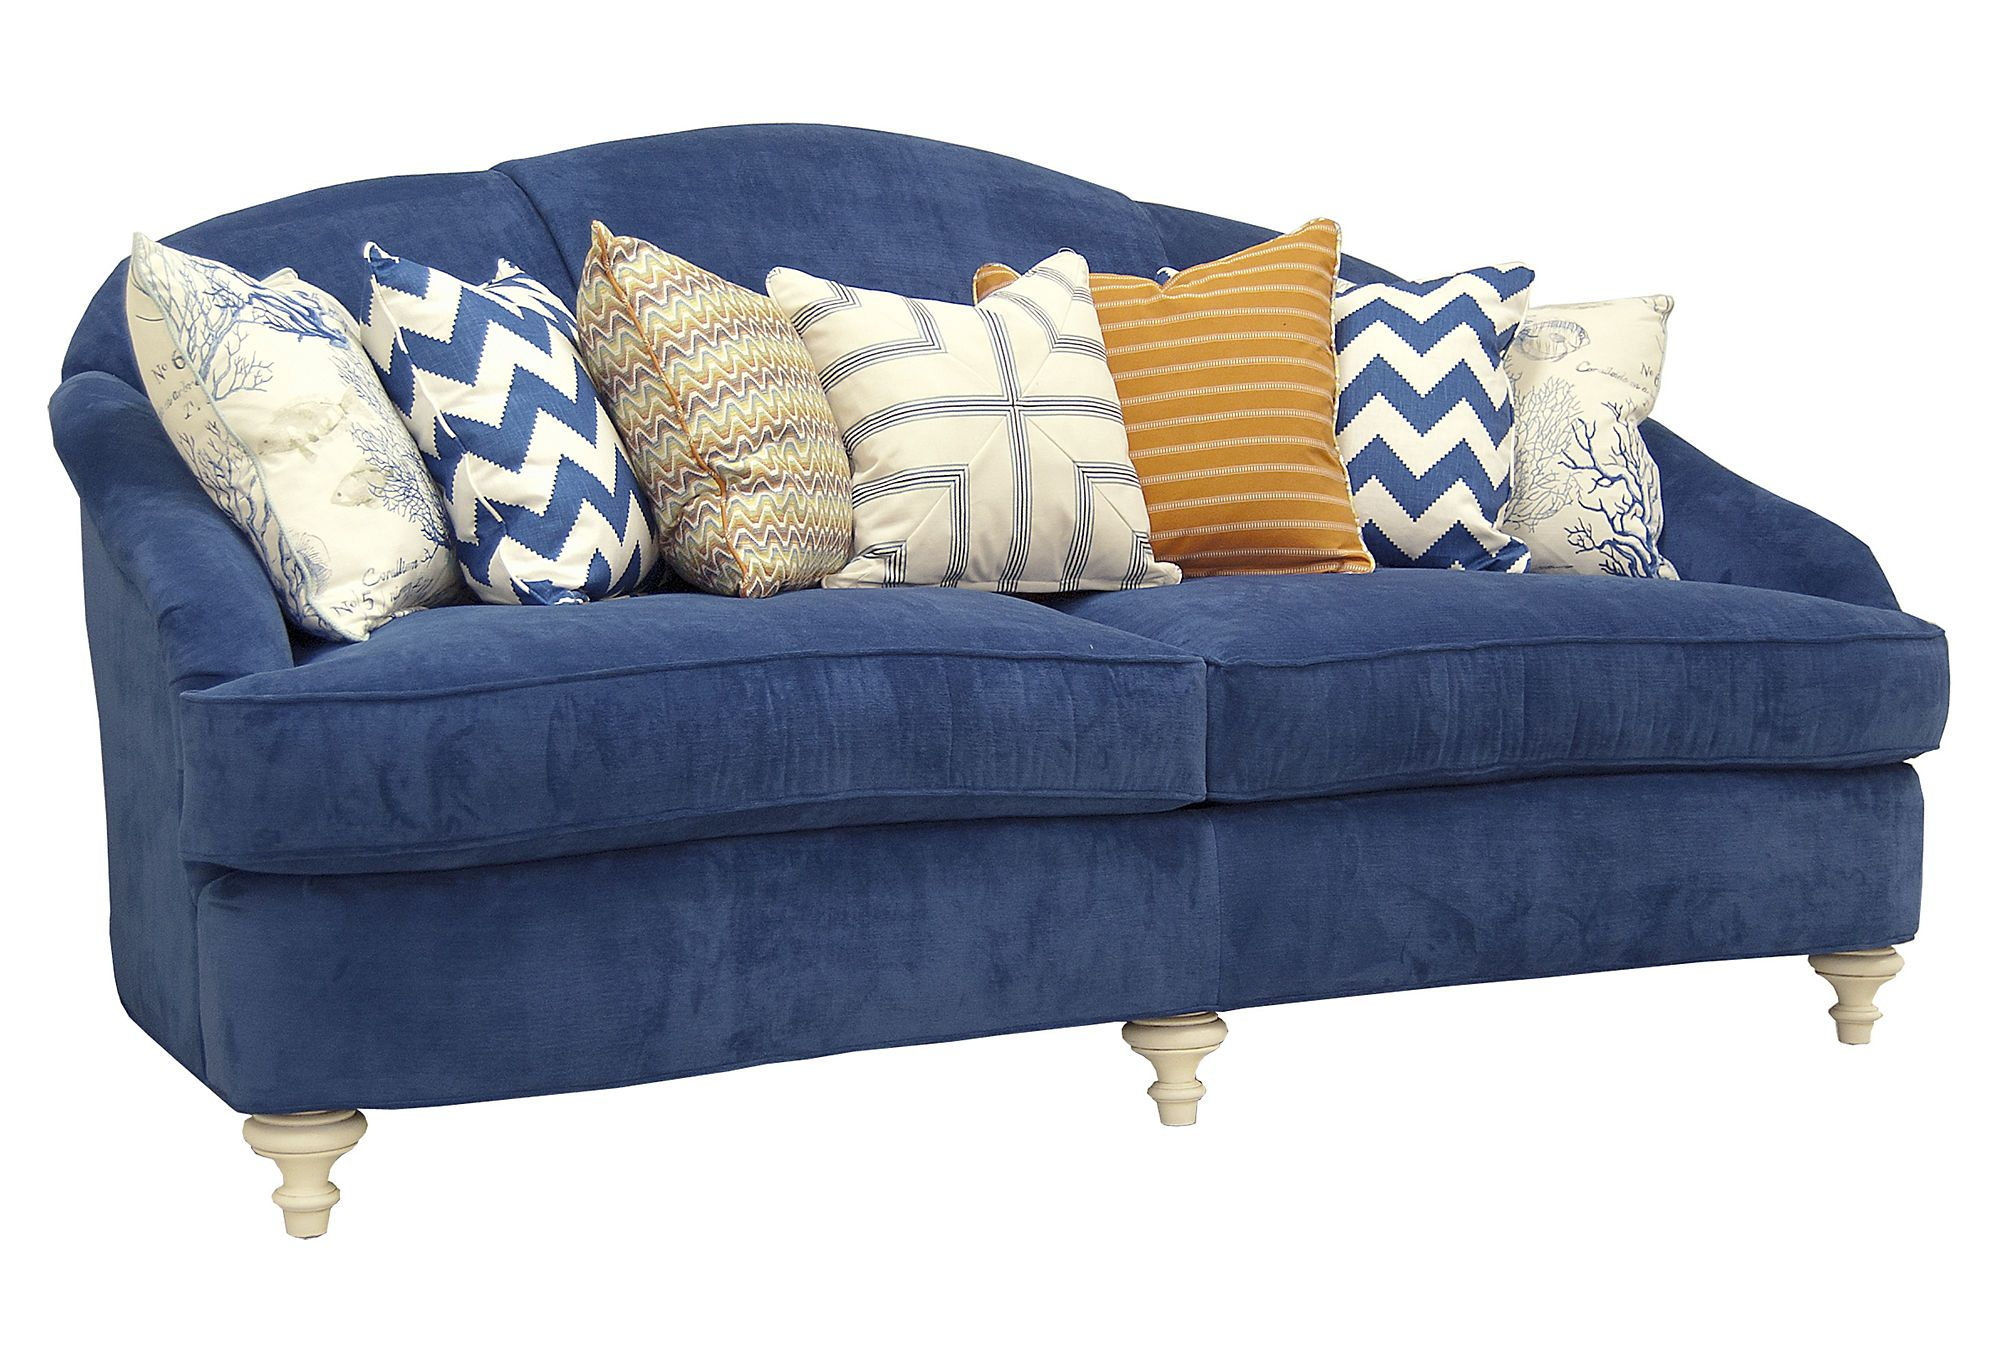 Navy Couch And Throw Pillows Decor Coastal Living Rooms